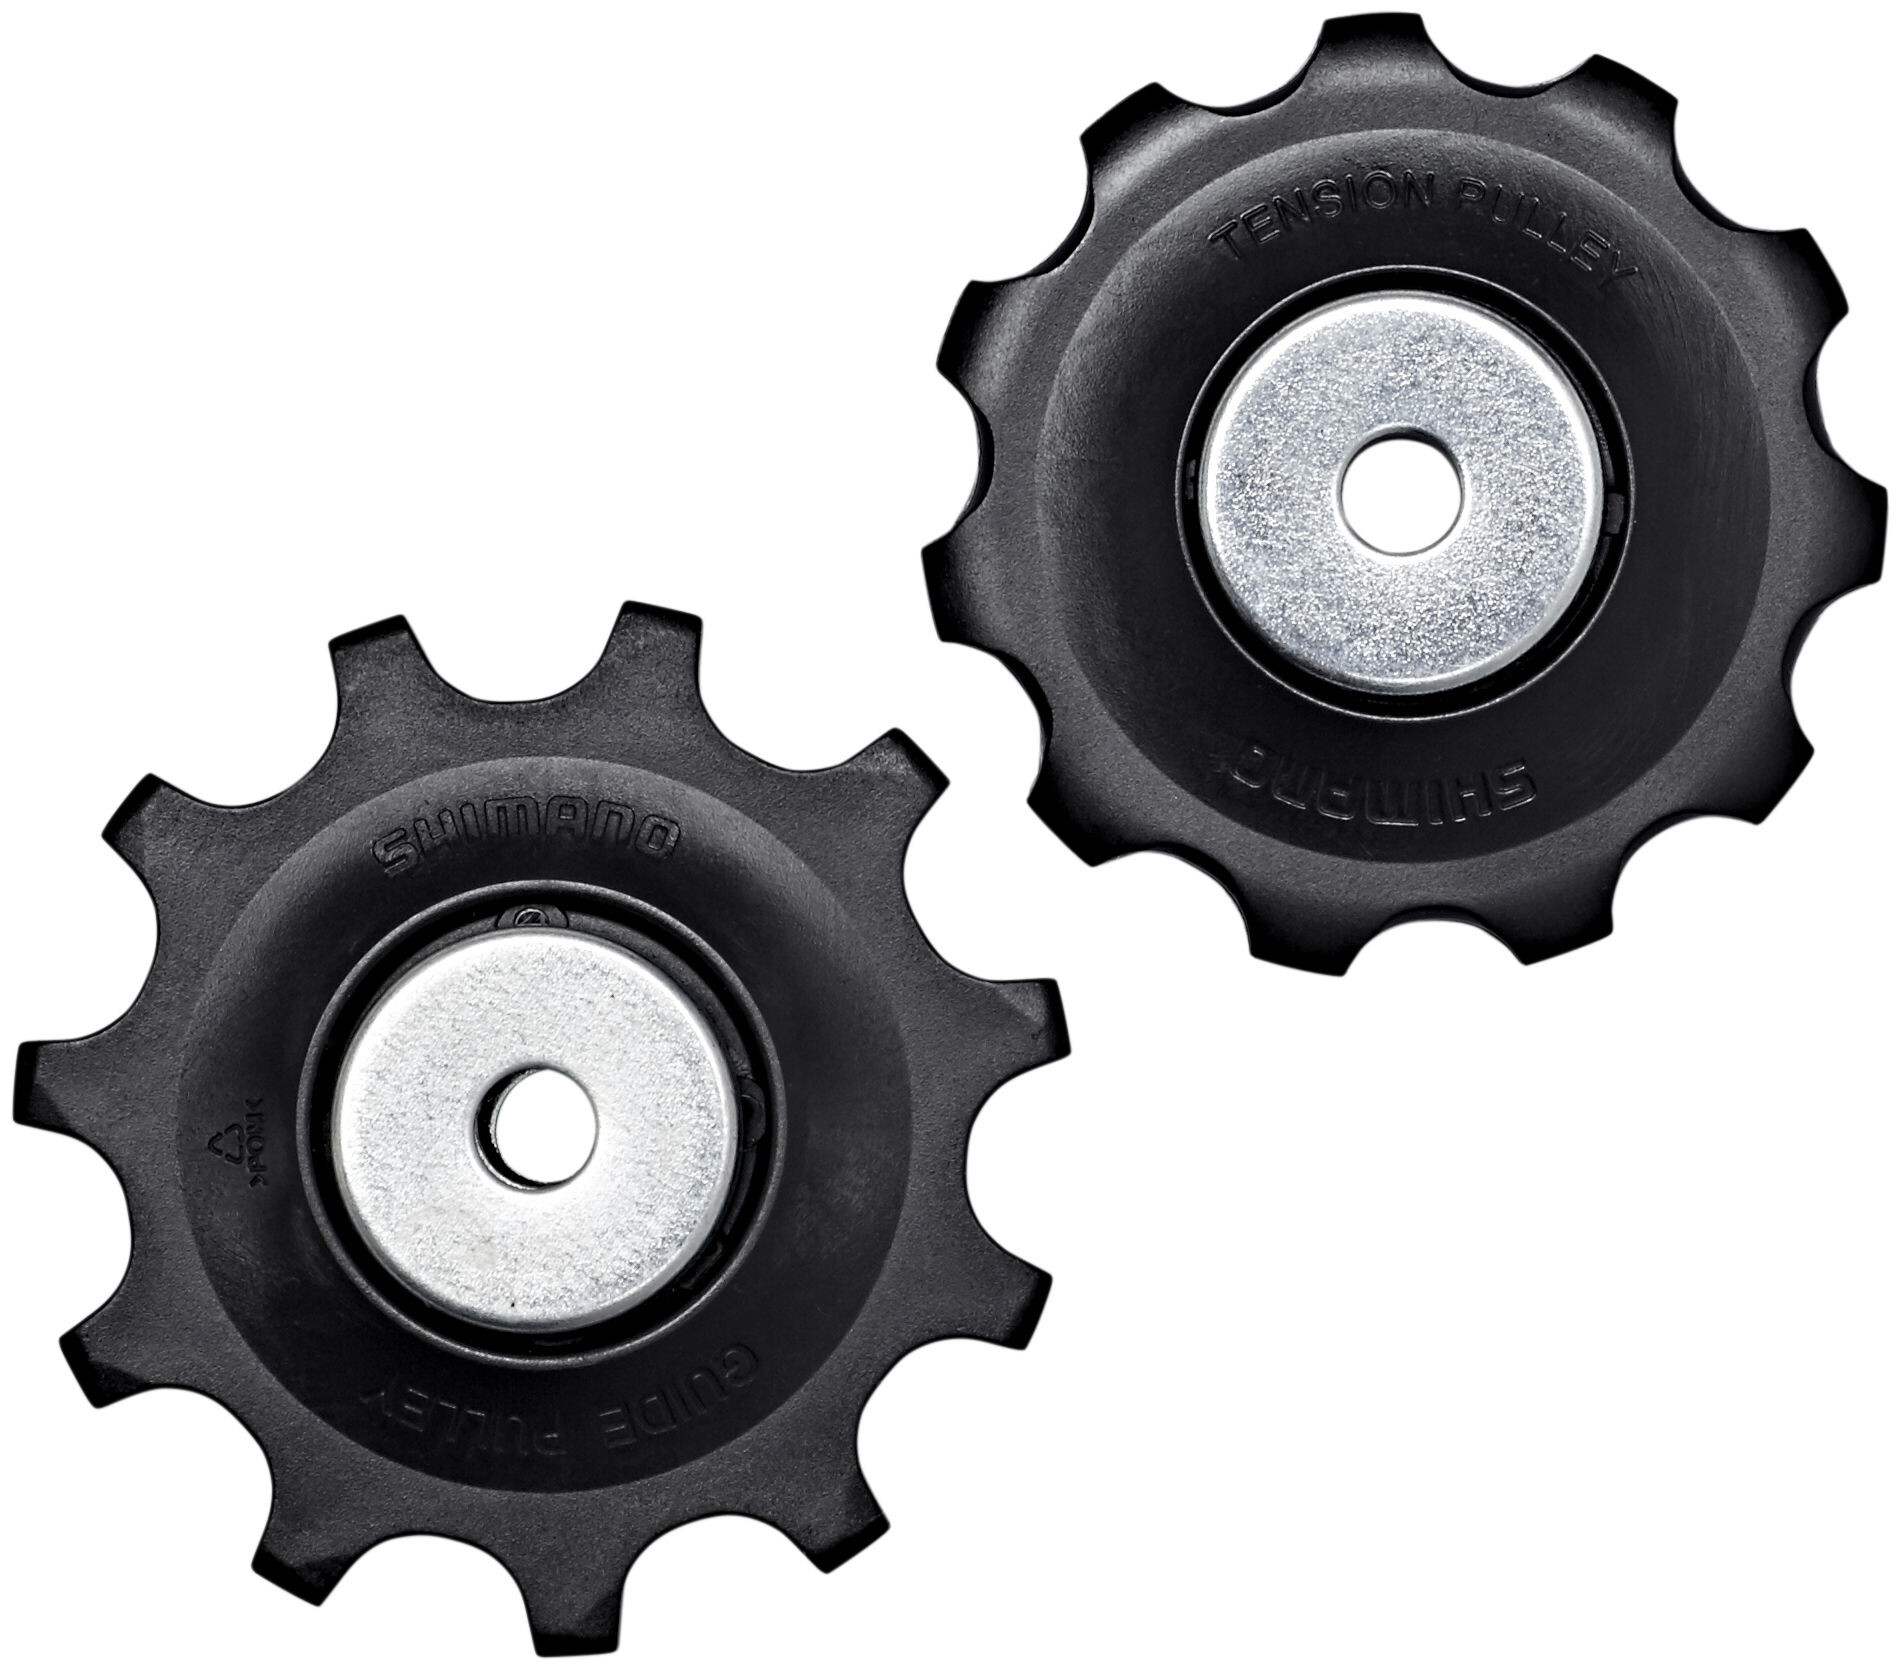 Shimano Deore RD-M6000 Pulleyhjul GS (2019) | Pulley wheels